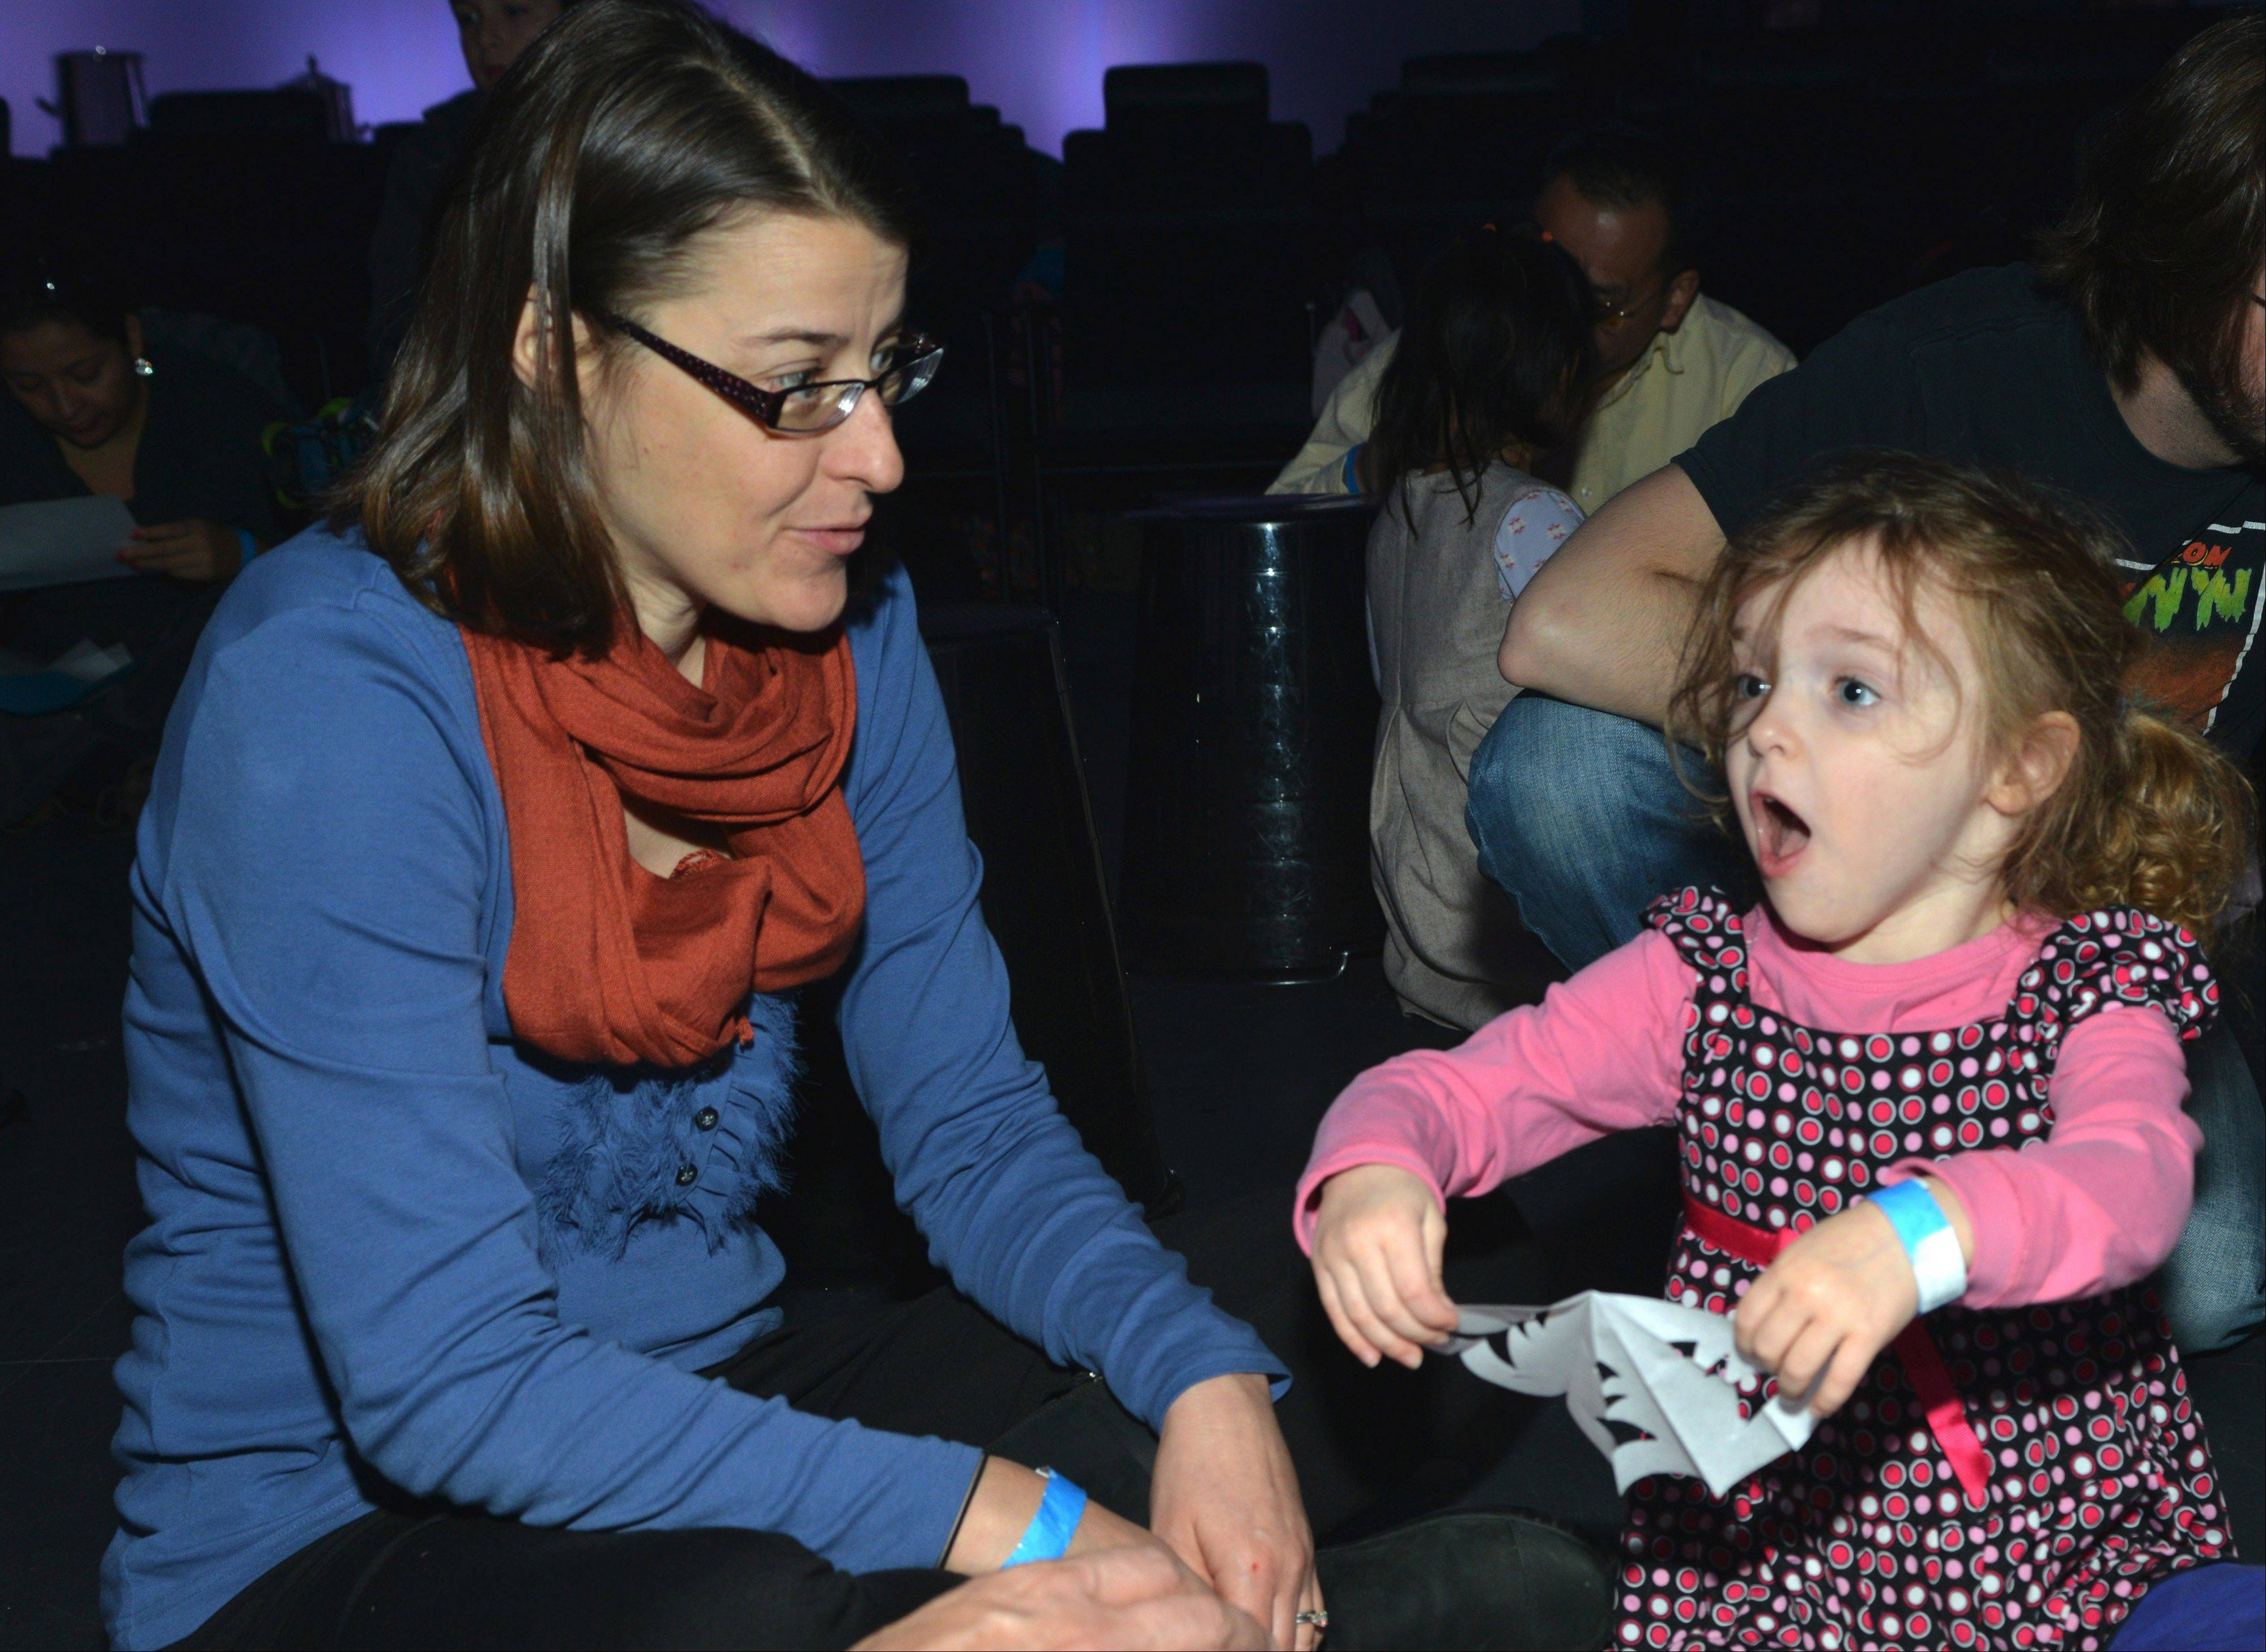 Adler Planetarium has a full week packed with fun family activities Dec. 26 to Jan. 1.